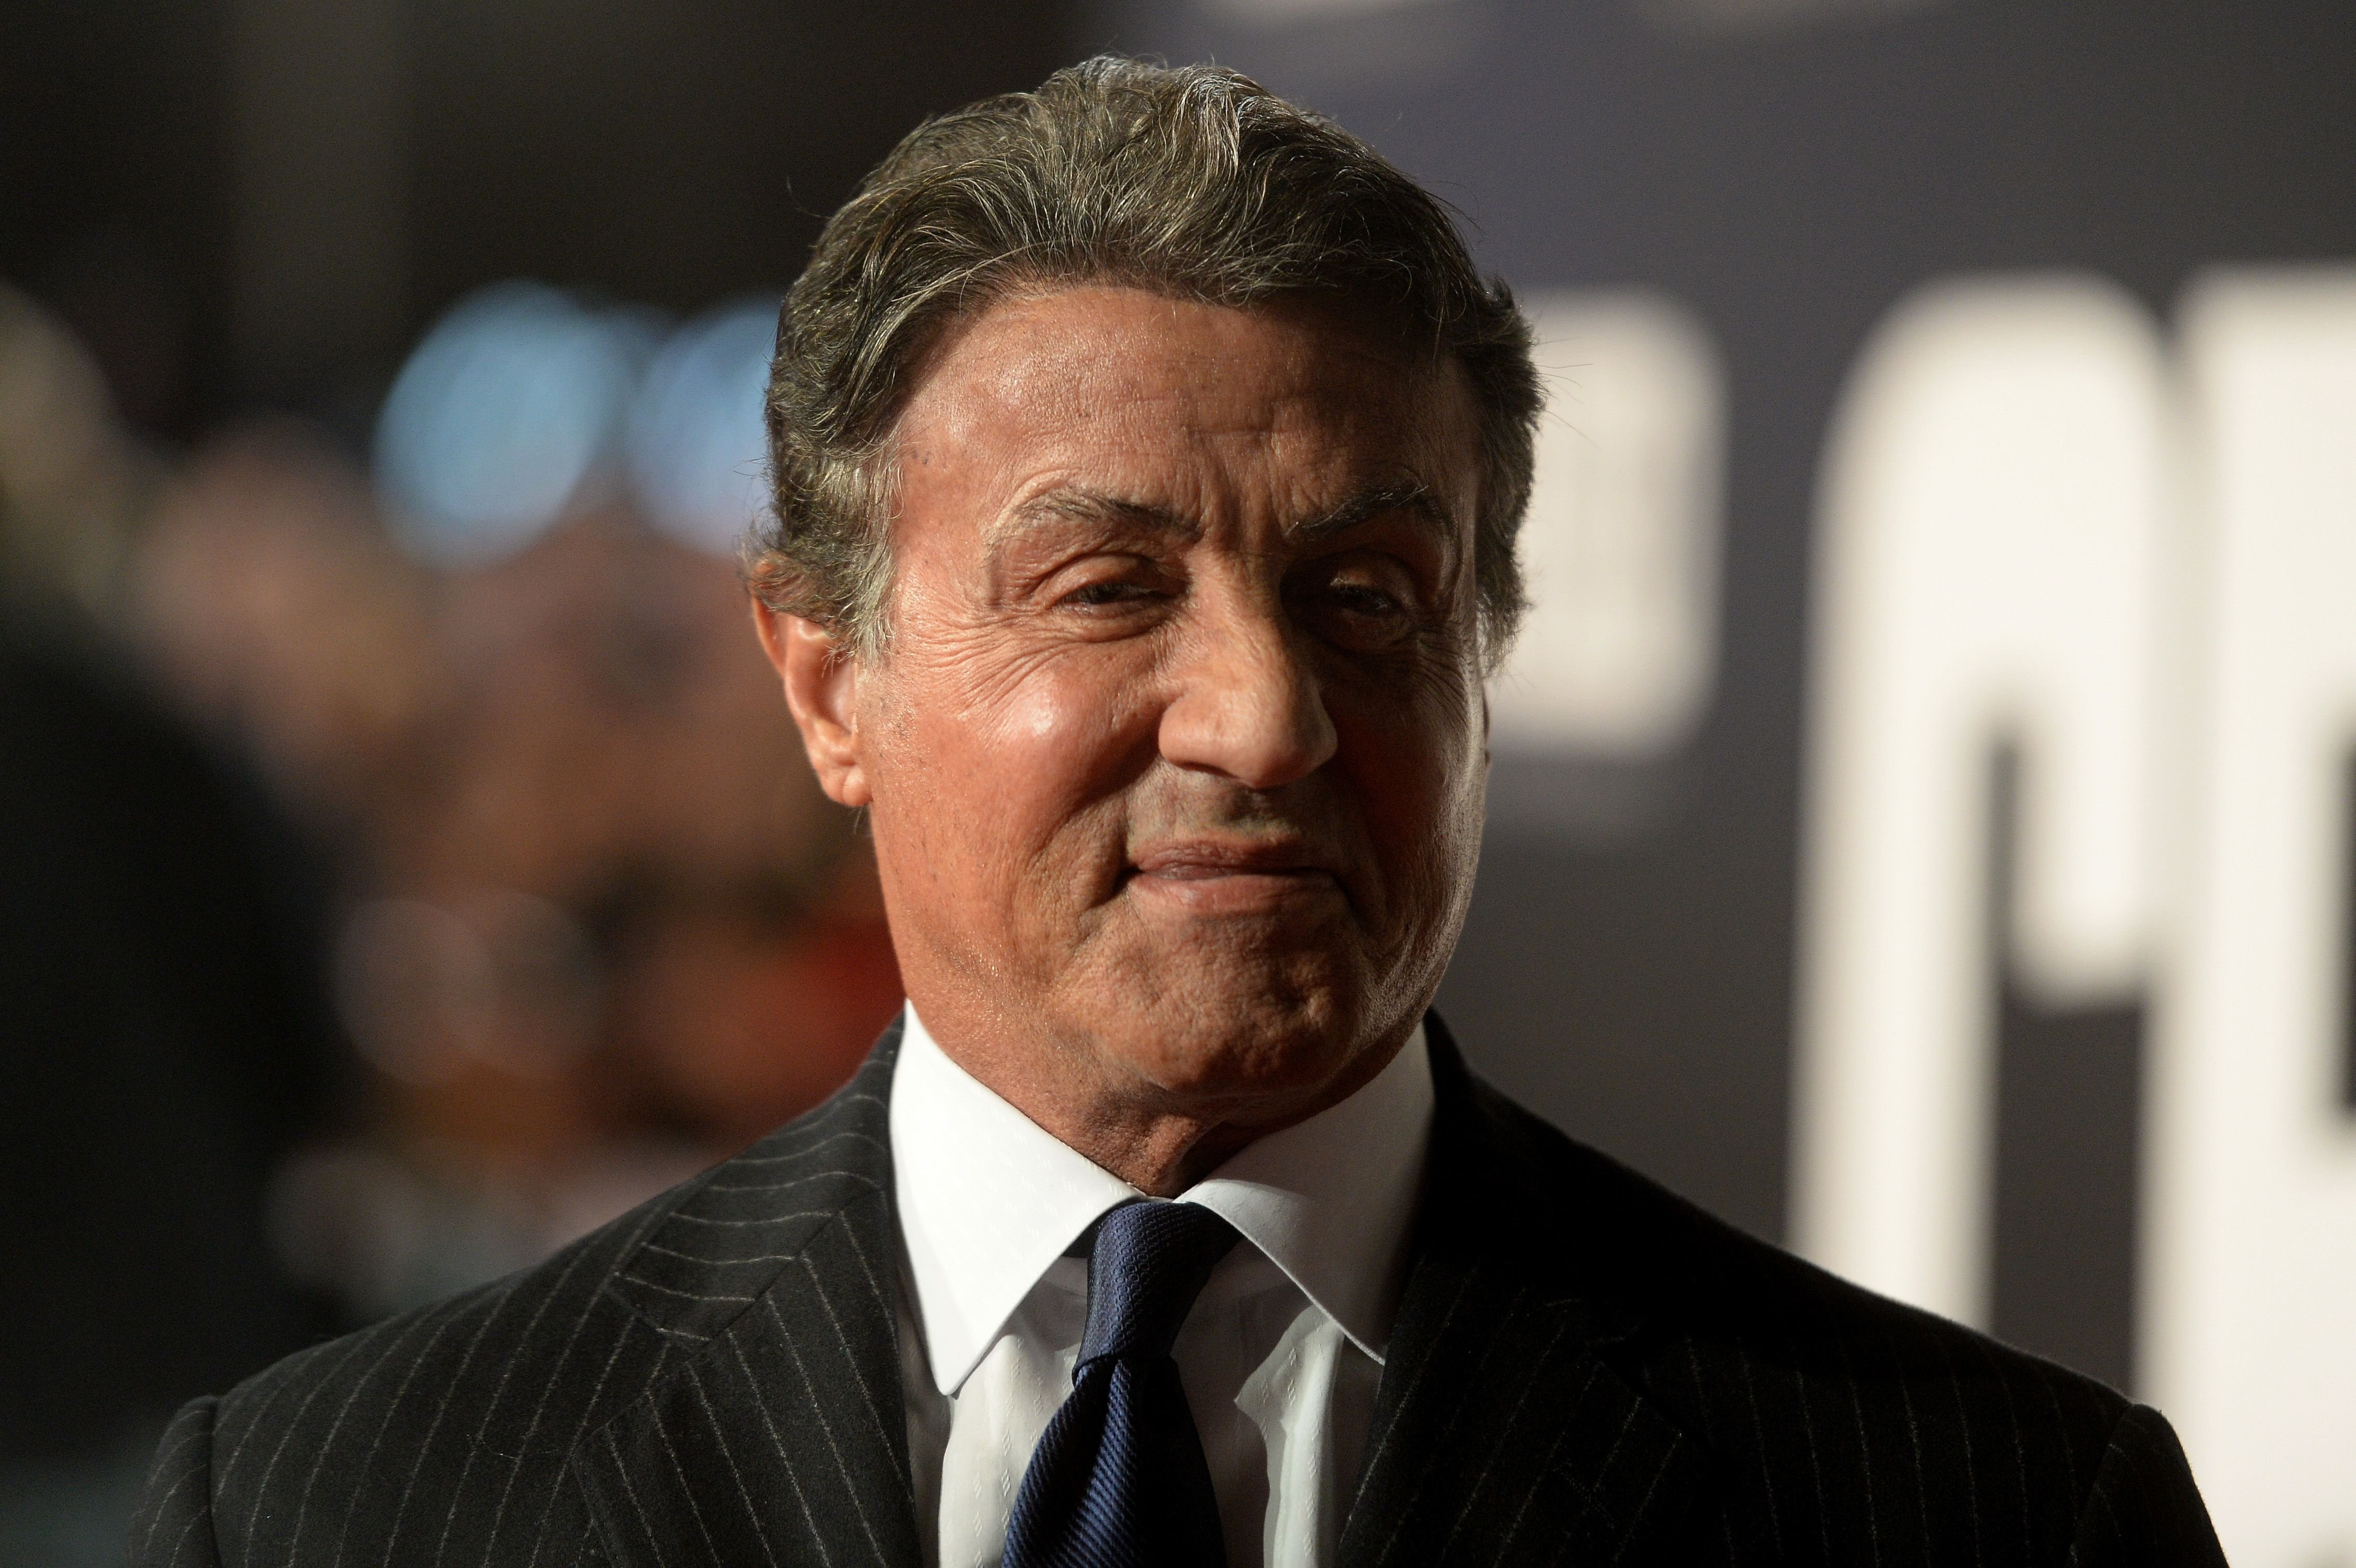 """Sylvester Stallone attends the European Premiere of """"Creed"""" at Empire Leicester Square on January 12, 2016 in London, England. 